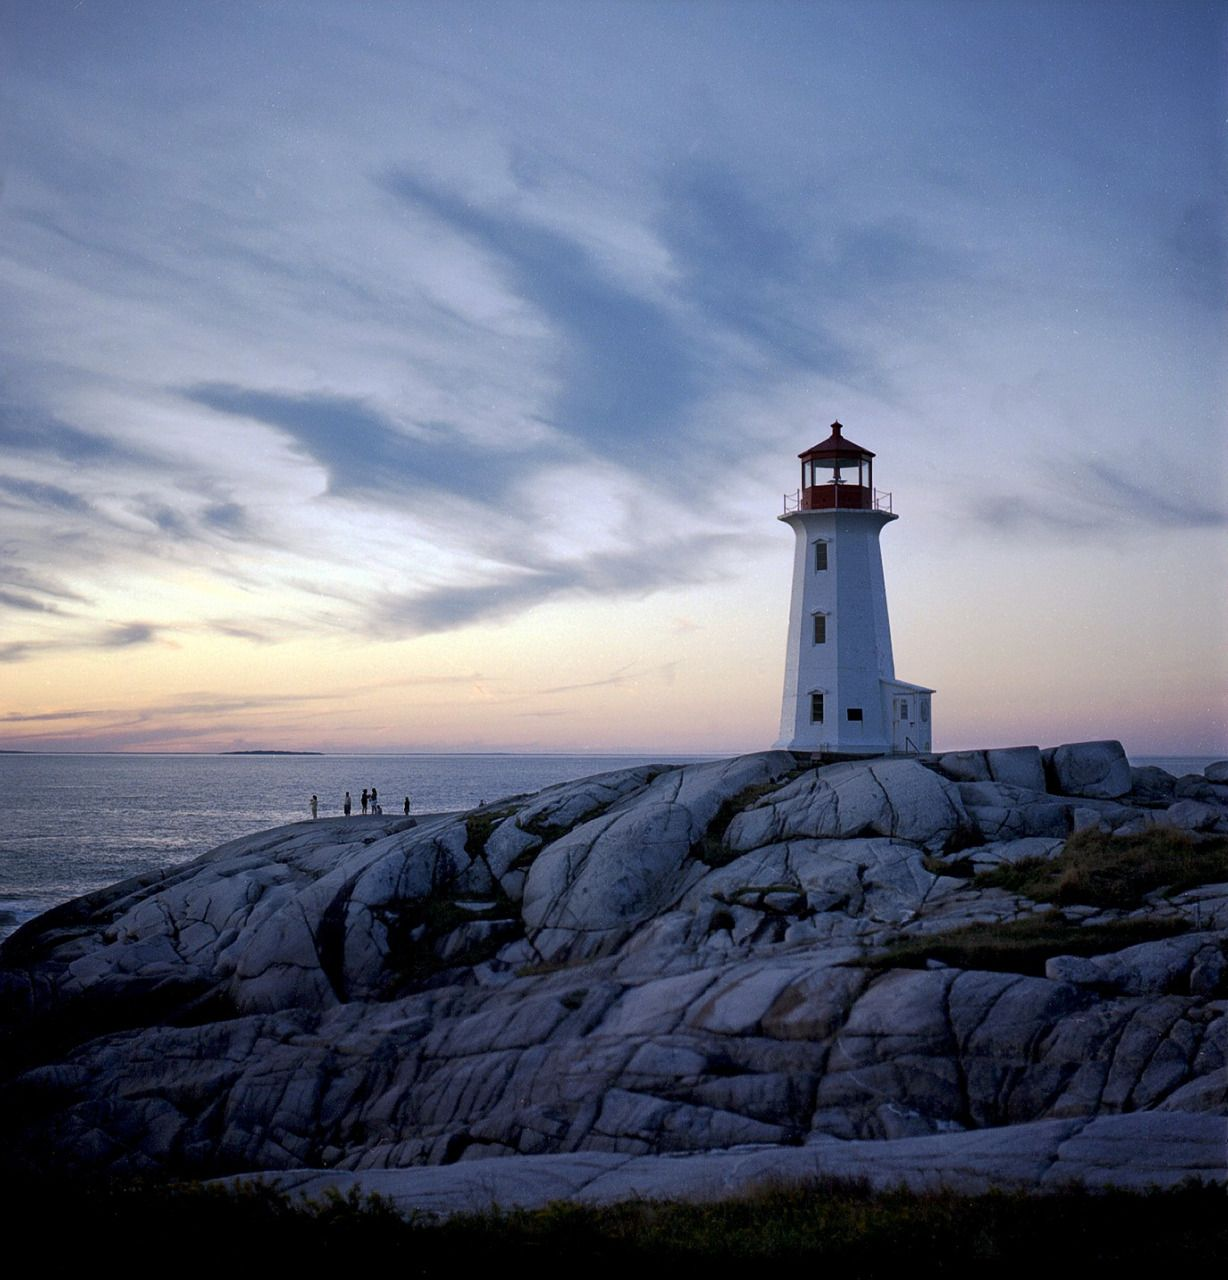 Kyle Hale Photo Cool places to visit, Canada lighthouse